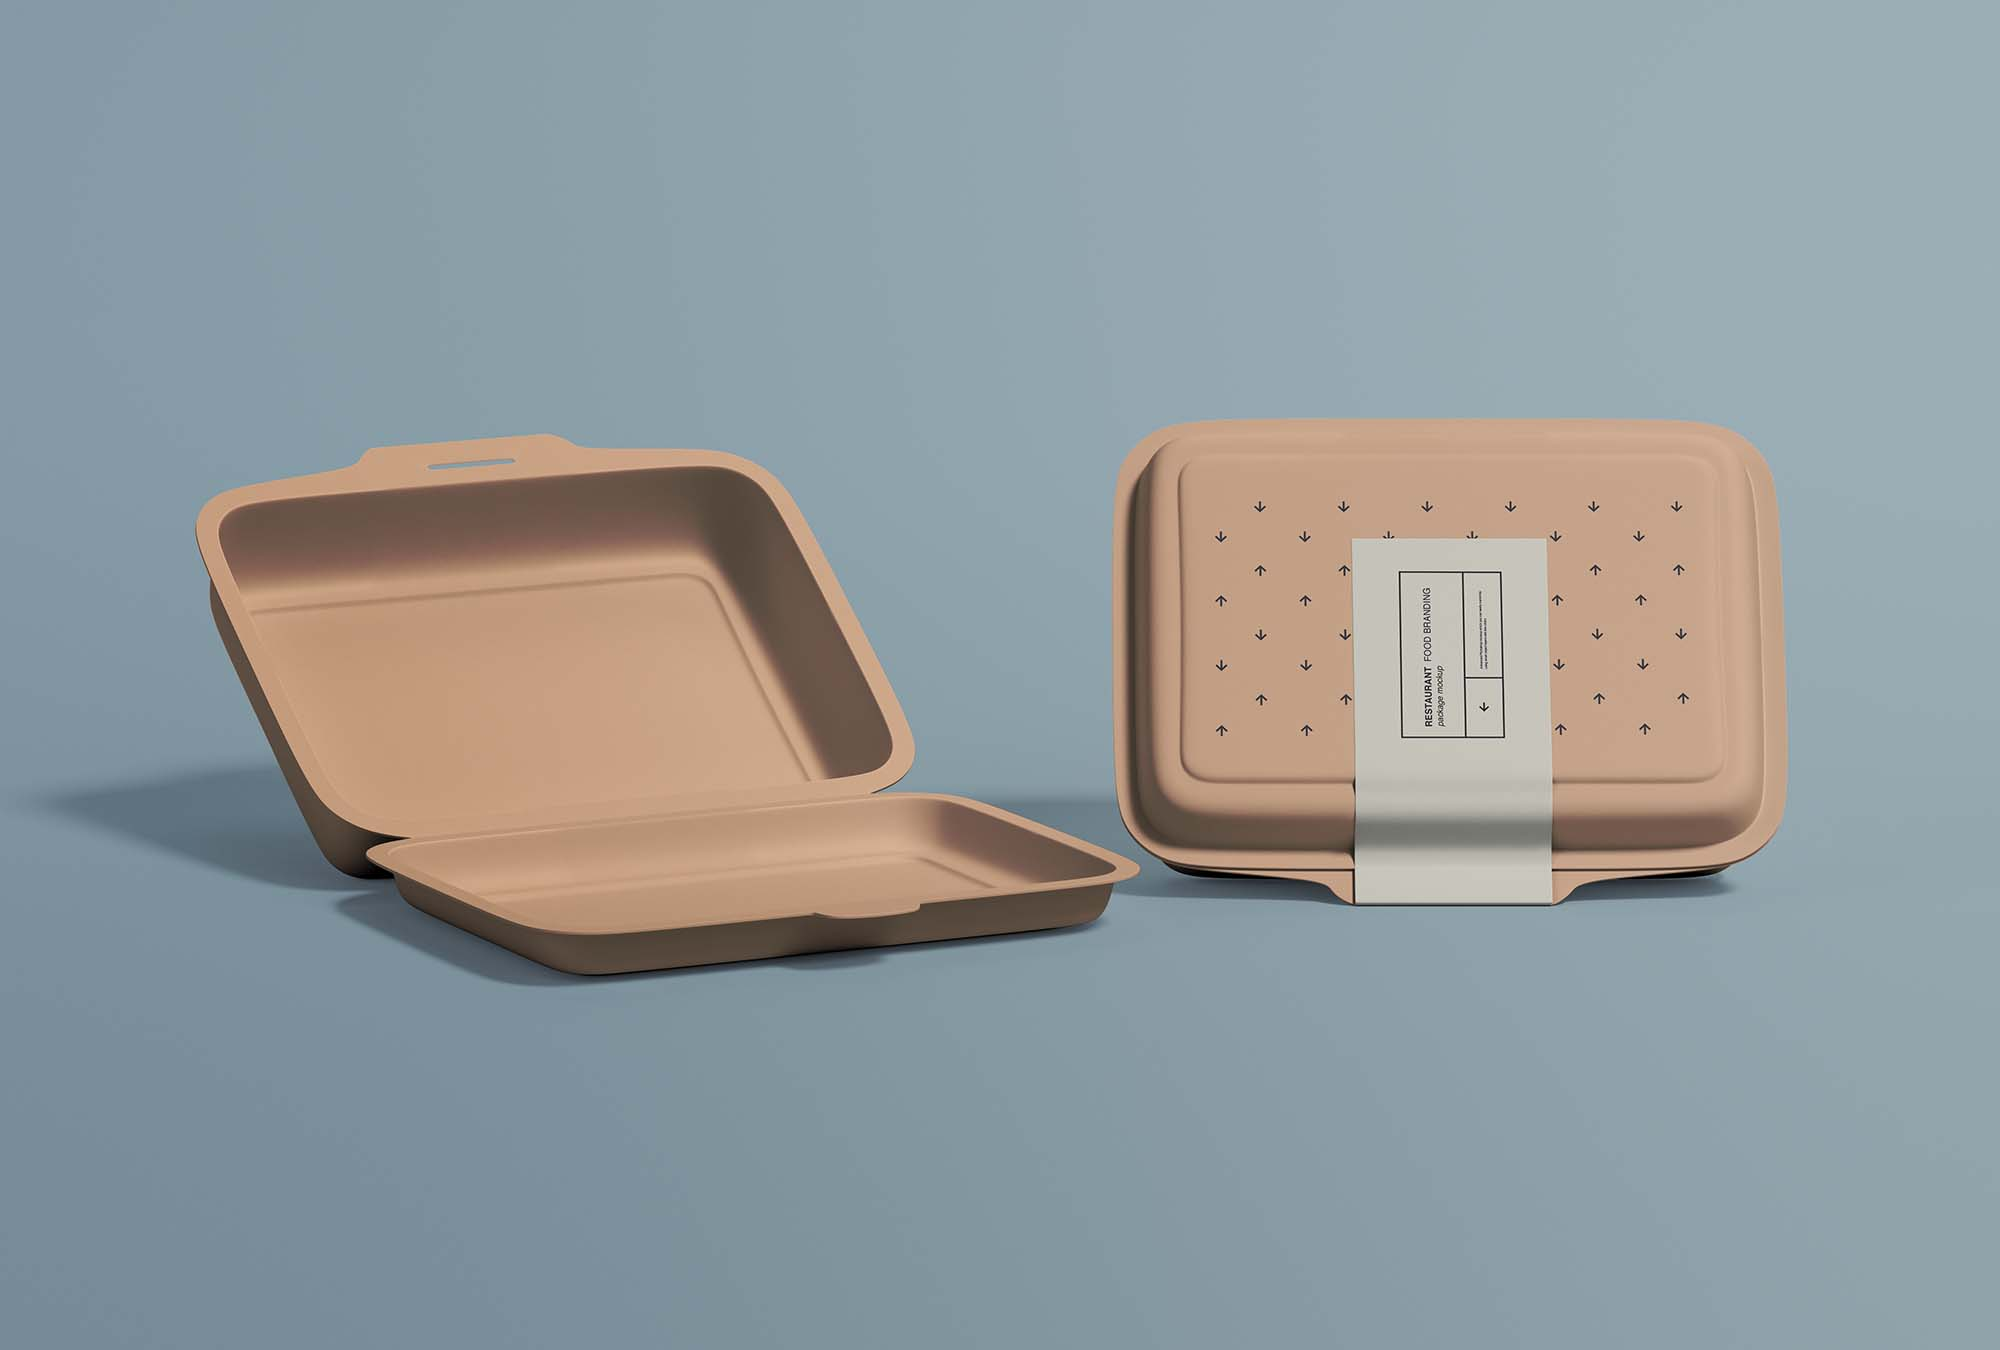 Restaurant Food Packaging Mockup 2